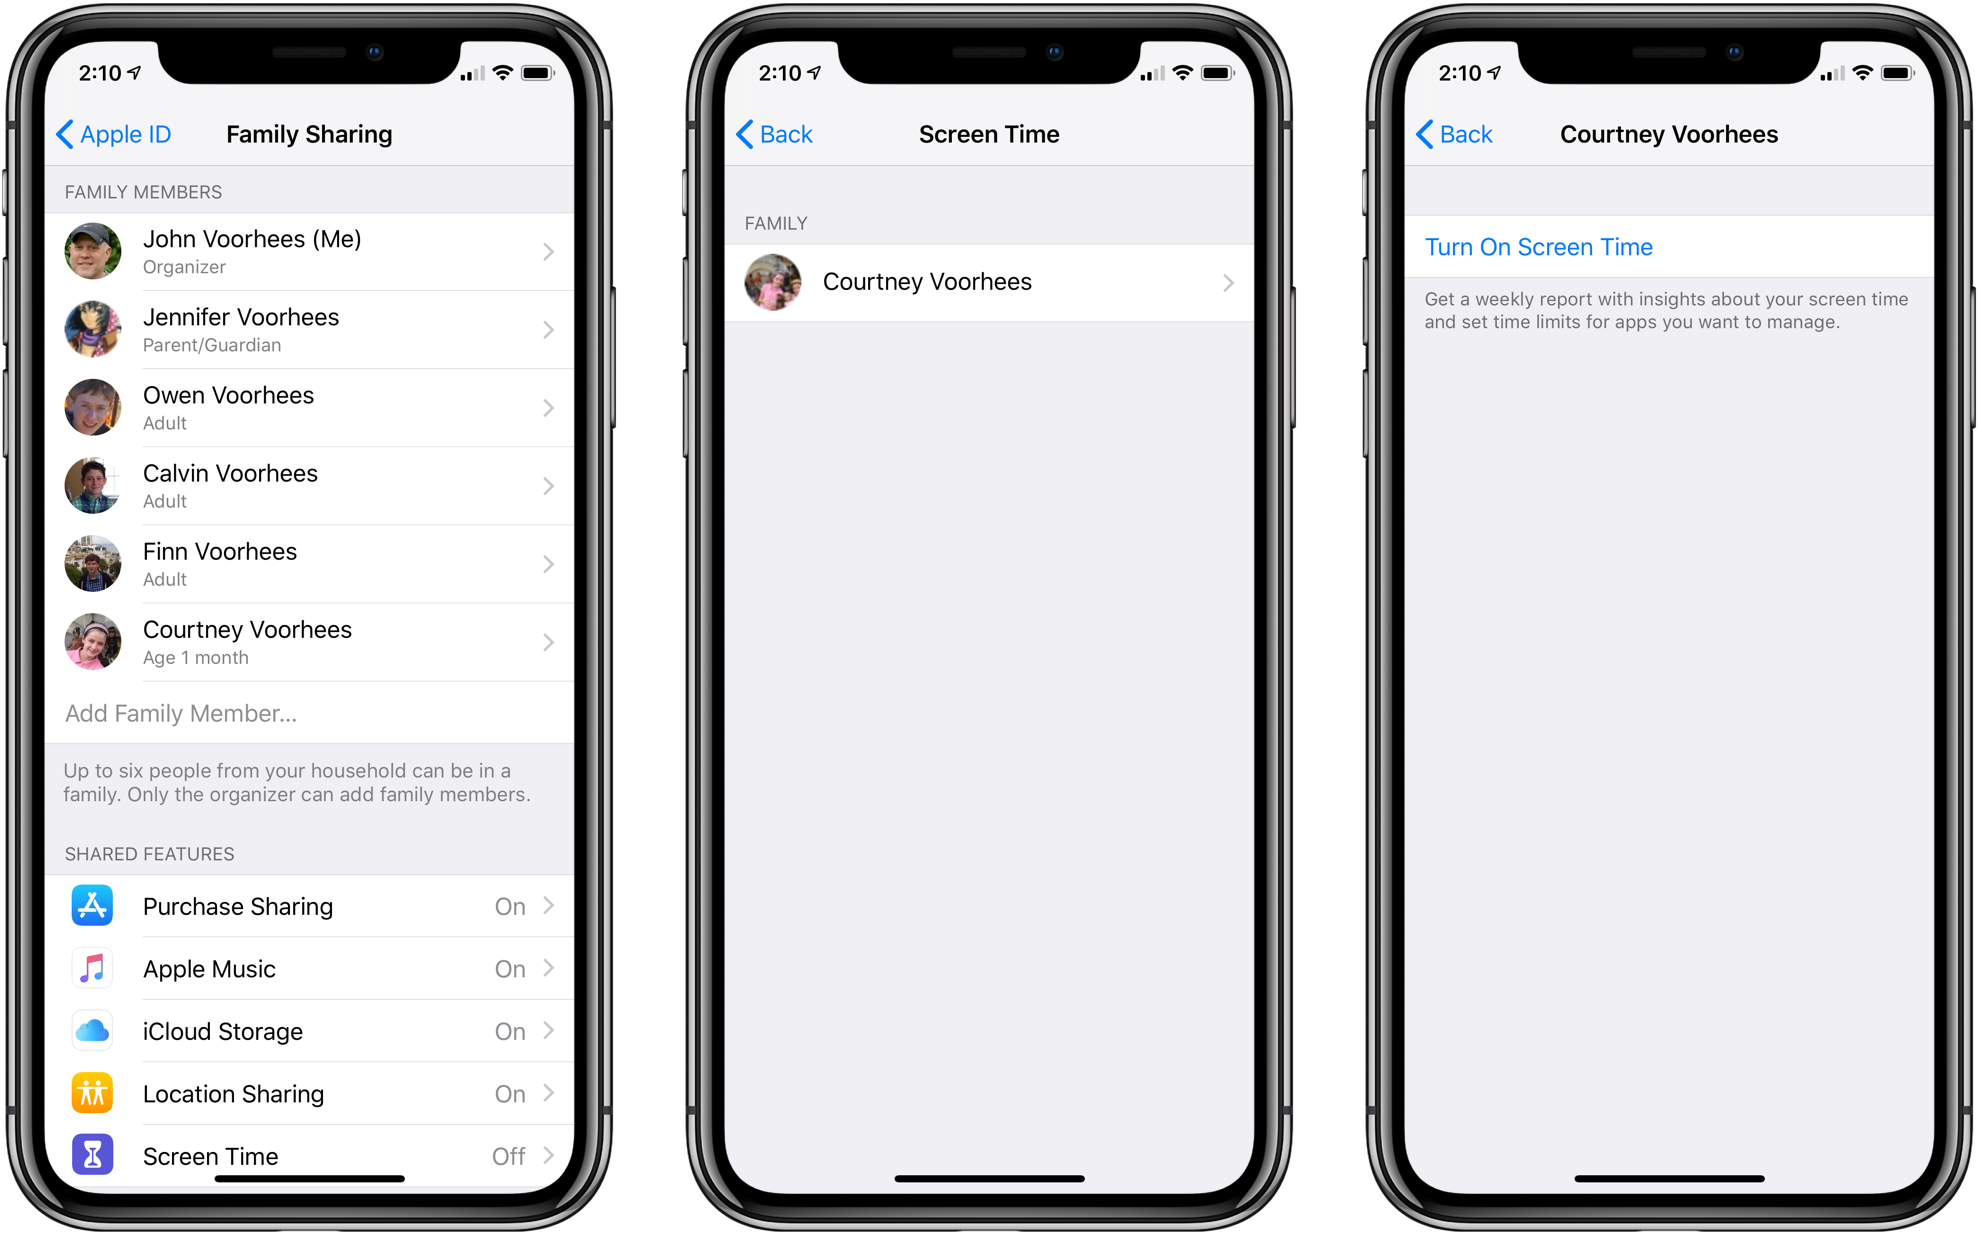 How to connect apple music through family sharing